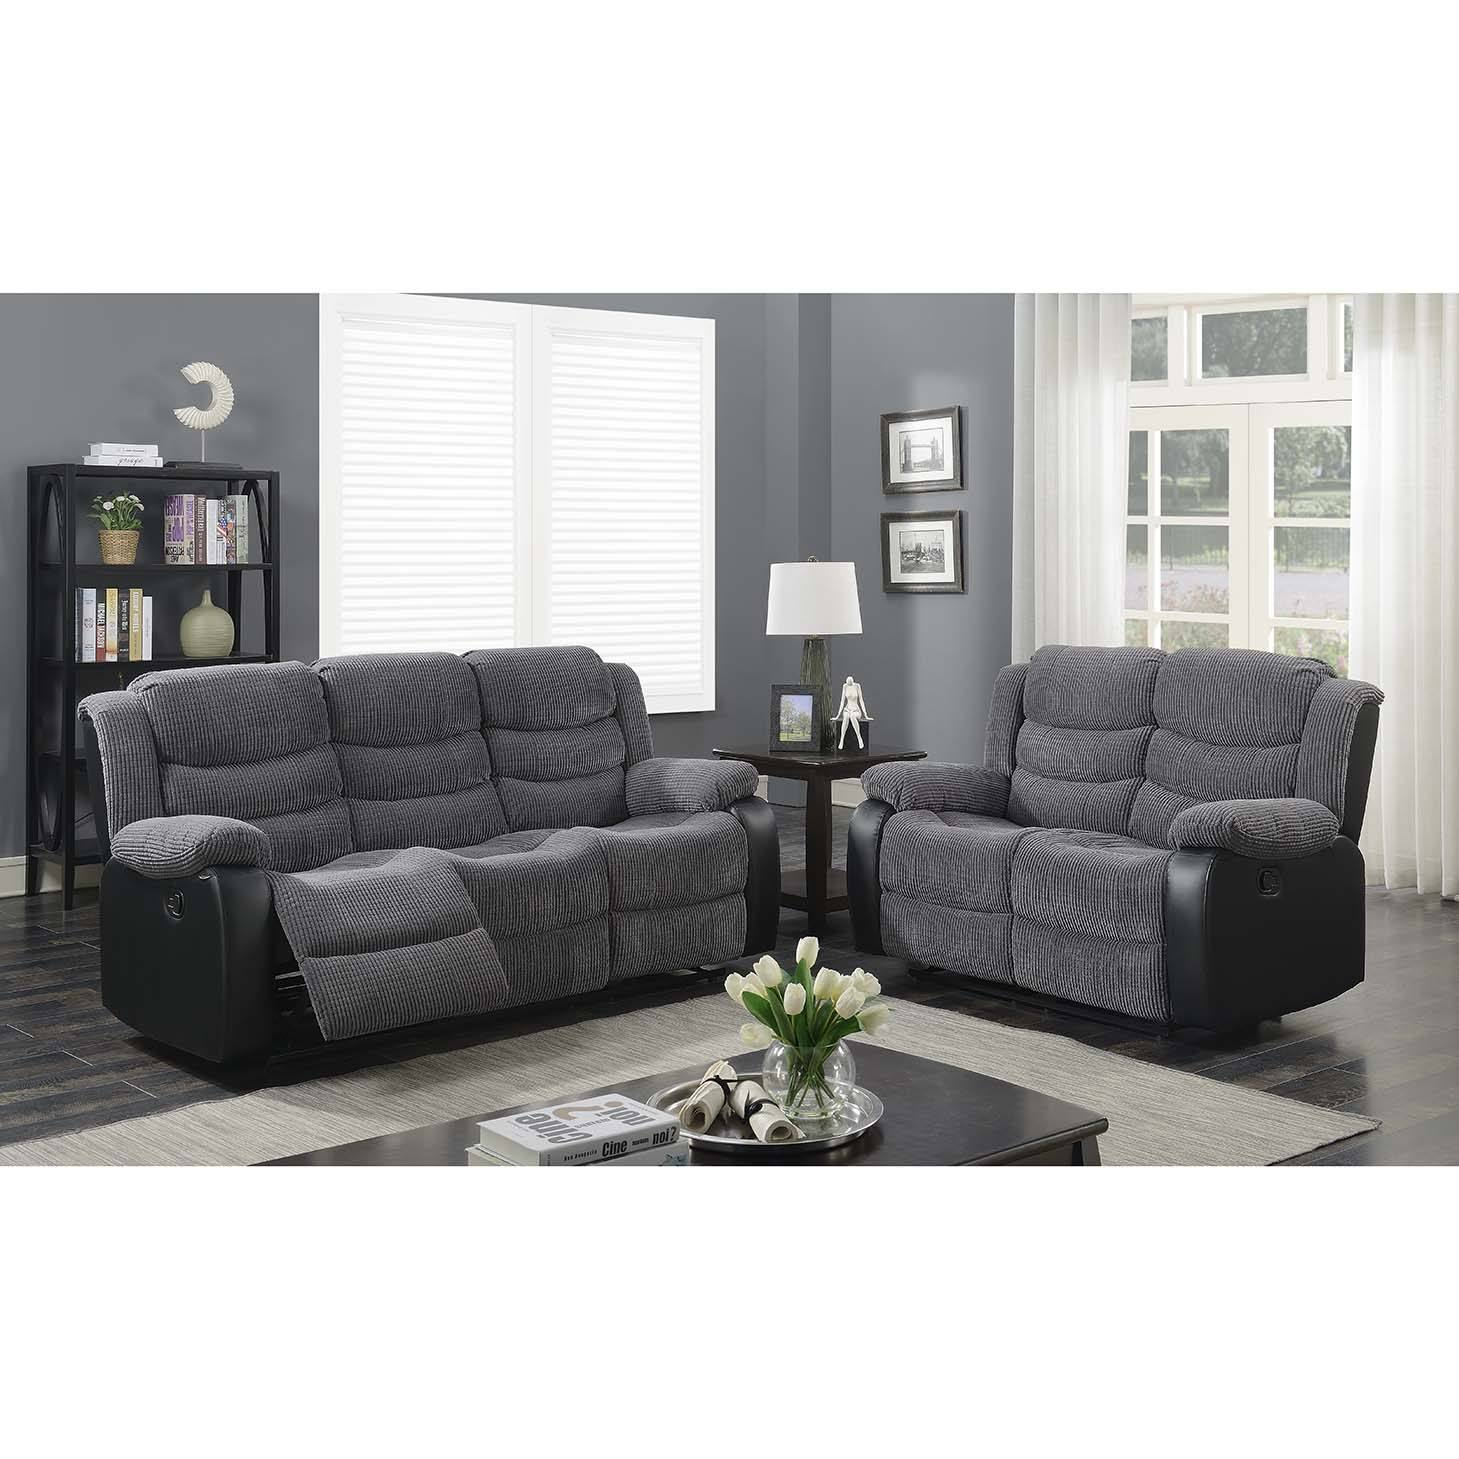 Hot Sell Sectionals Reclining Sofa Comfortable Leather Recliner Sofa Set Living Room Furniture Sets Couch Living Room Sofas